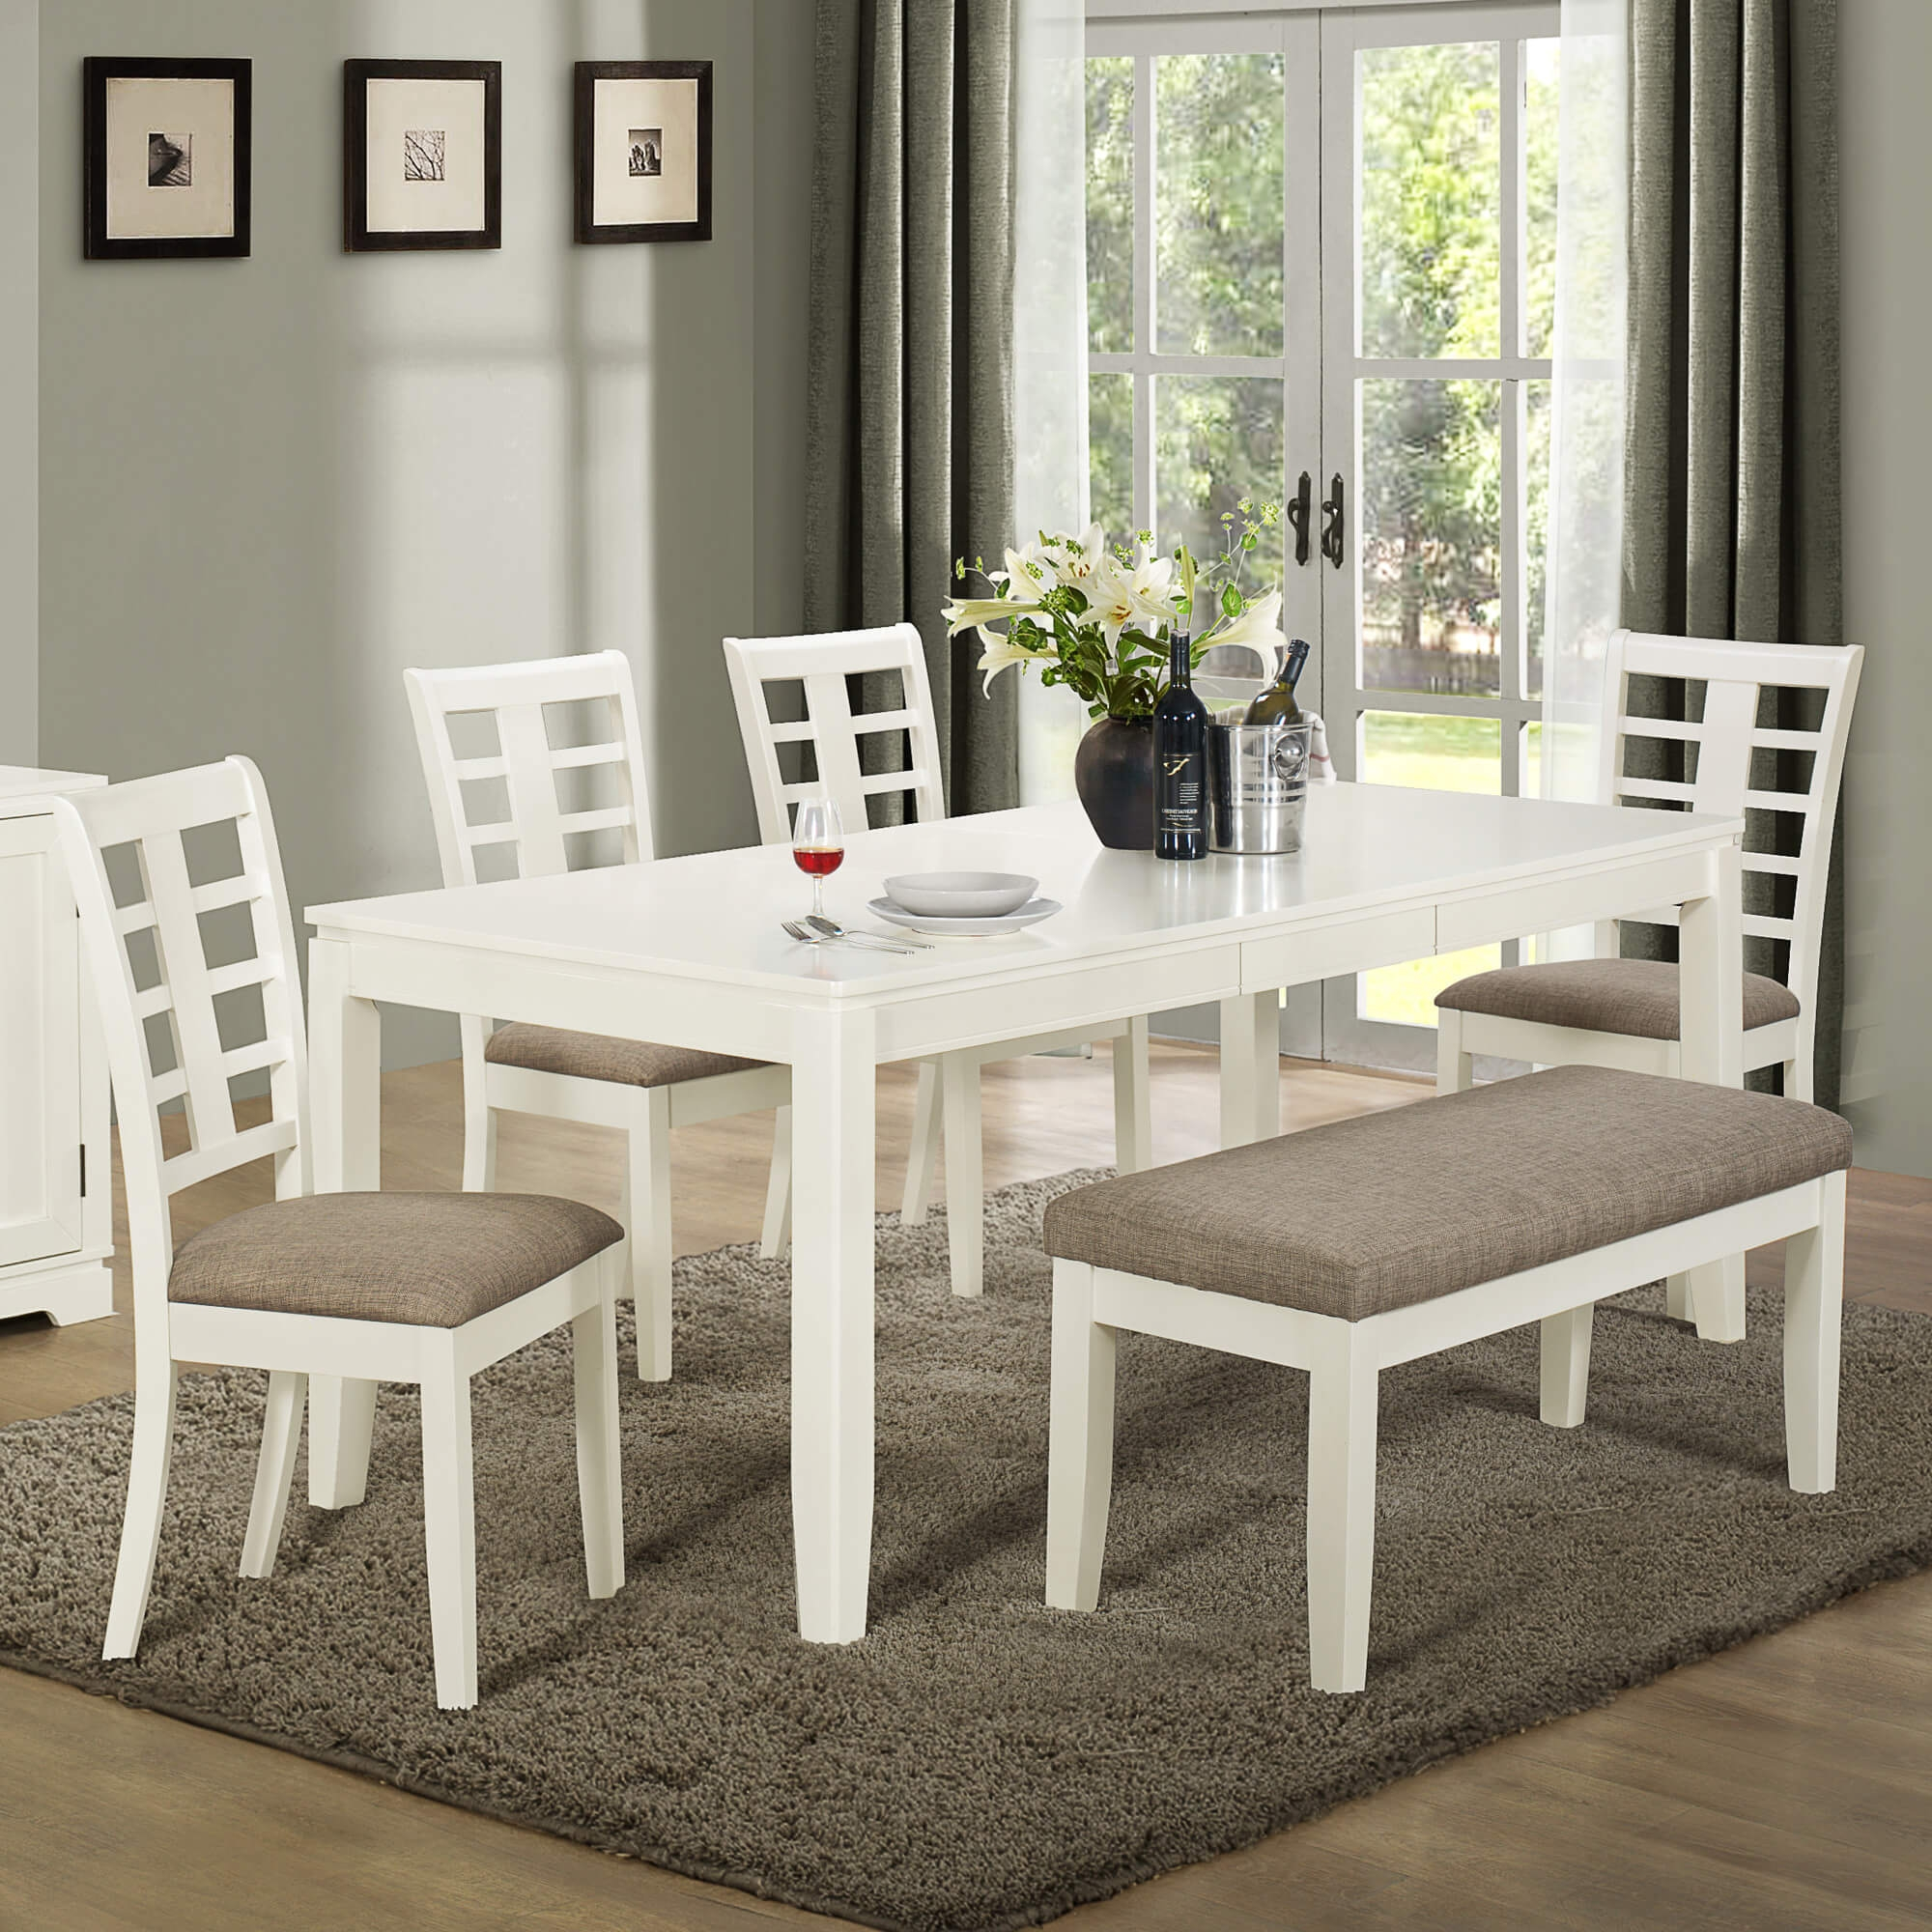 White Kitchen Table Set With Bench